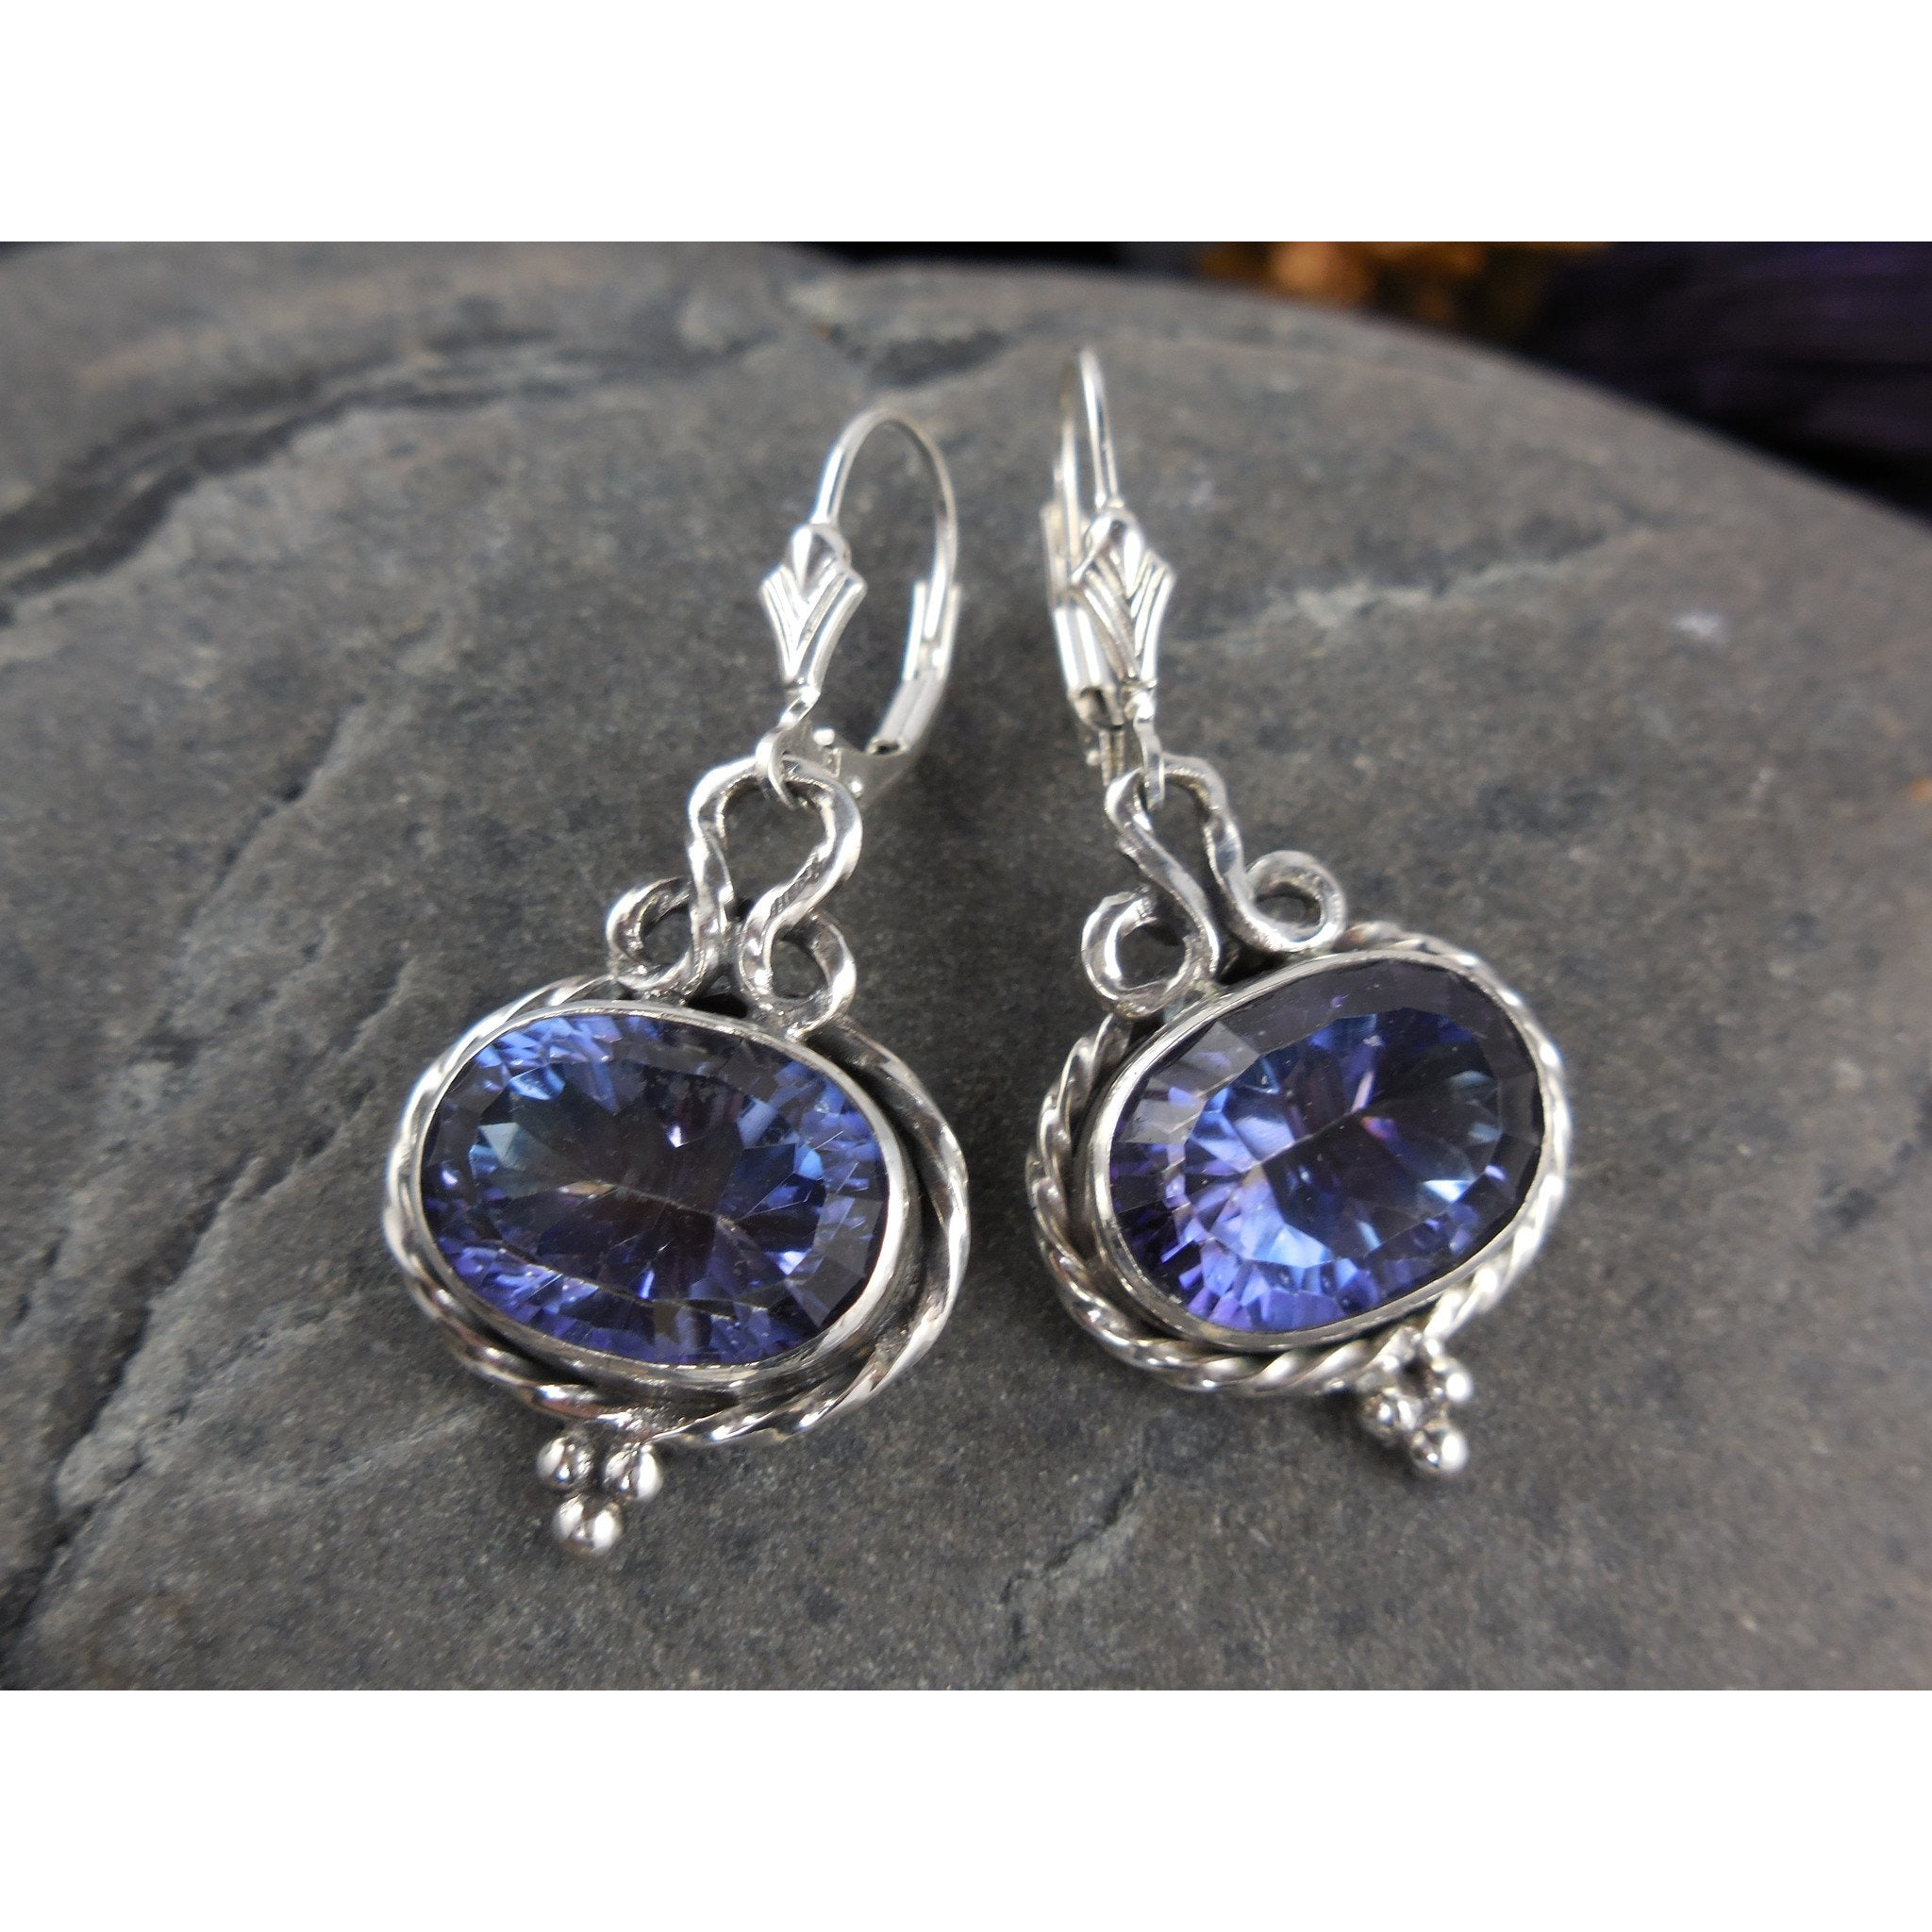 Mystic Blue Quartz Gemstone Sterling Silver Earrings